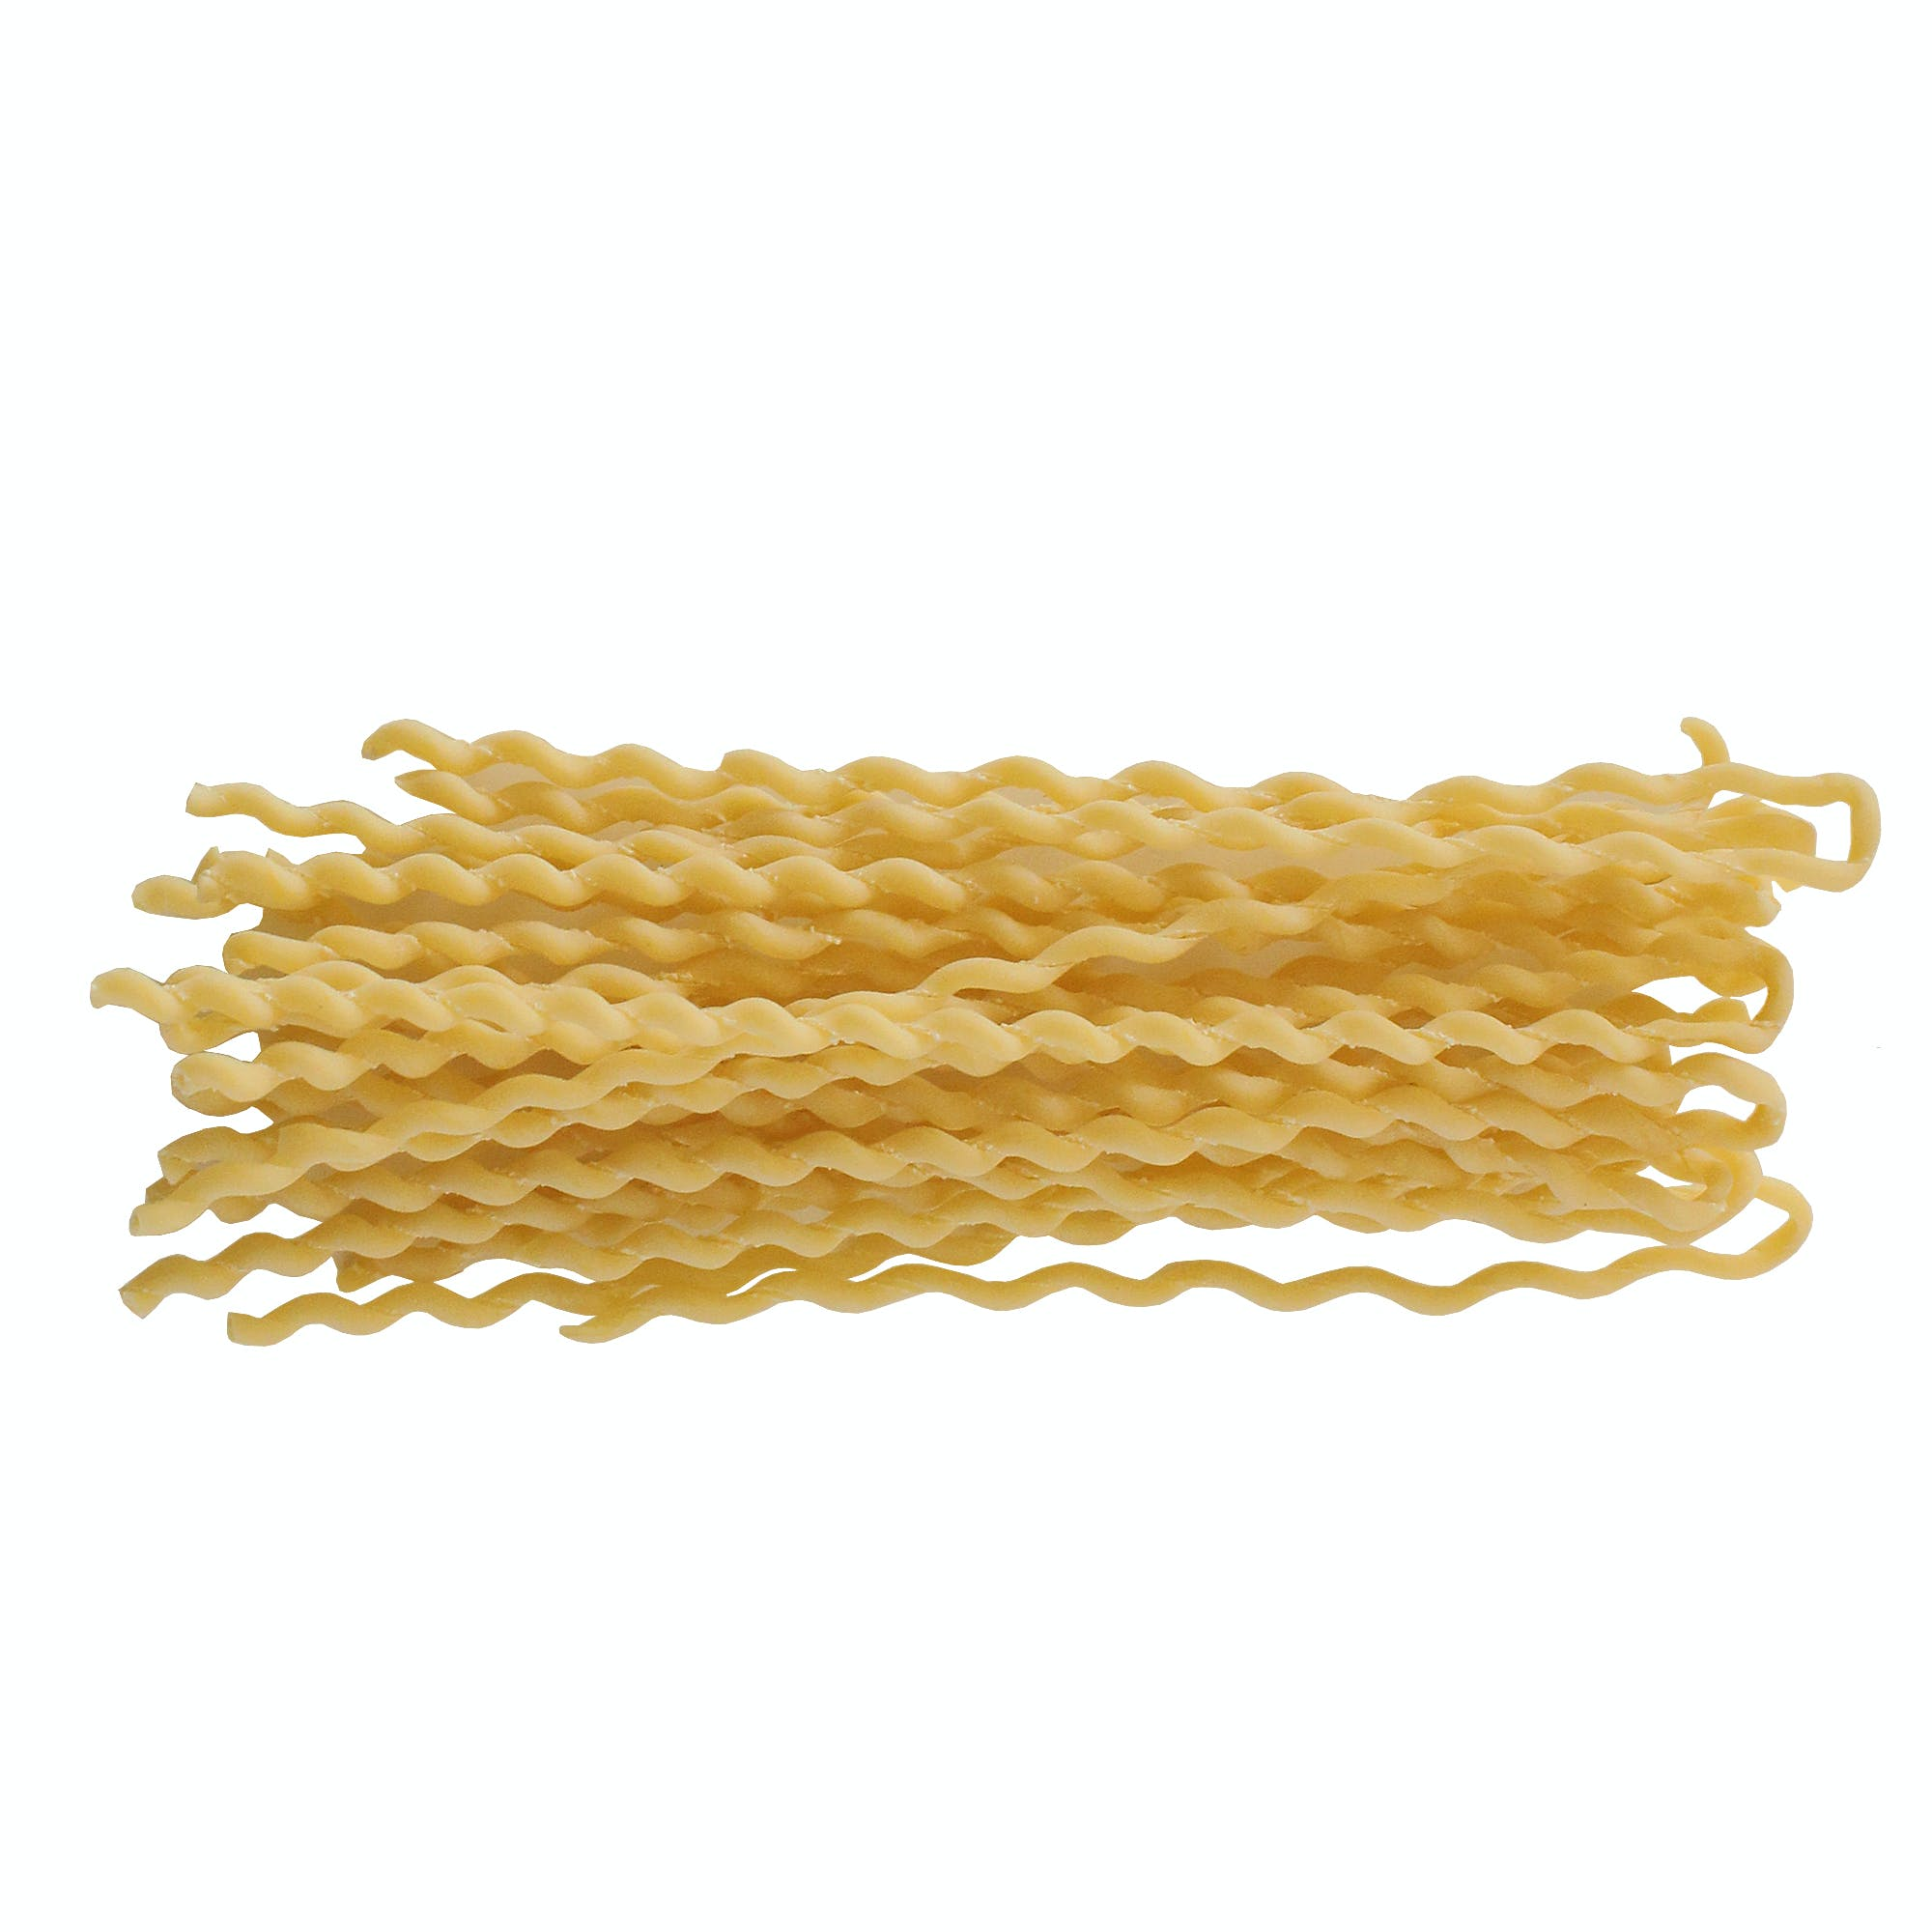 Canule White Pasta Pasta sold by M5 Corporation